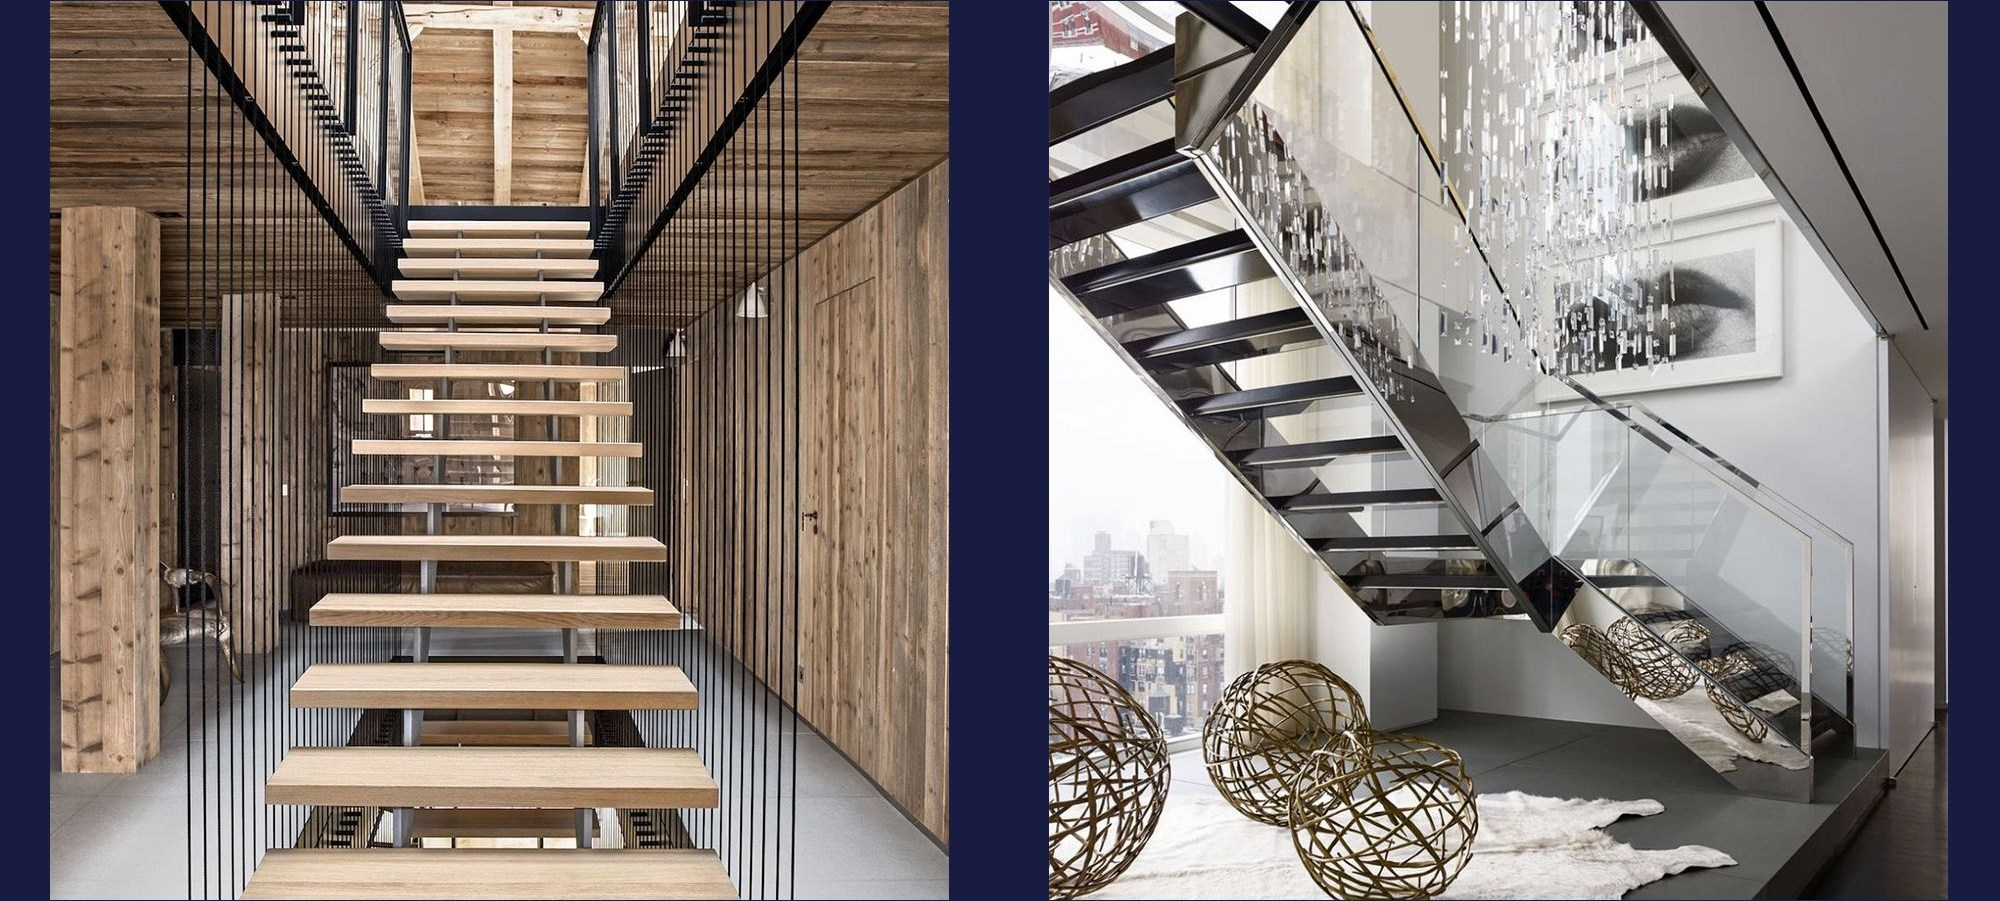 20 Striking Open Stairs Modern Open Staircase Design Ideas   Metal And Wood Stairs   Straight   Diy   Residential   Rustic   Stair Railing